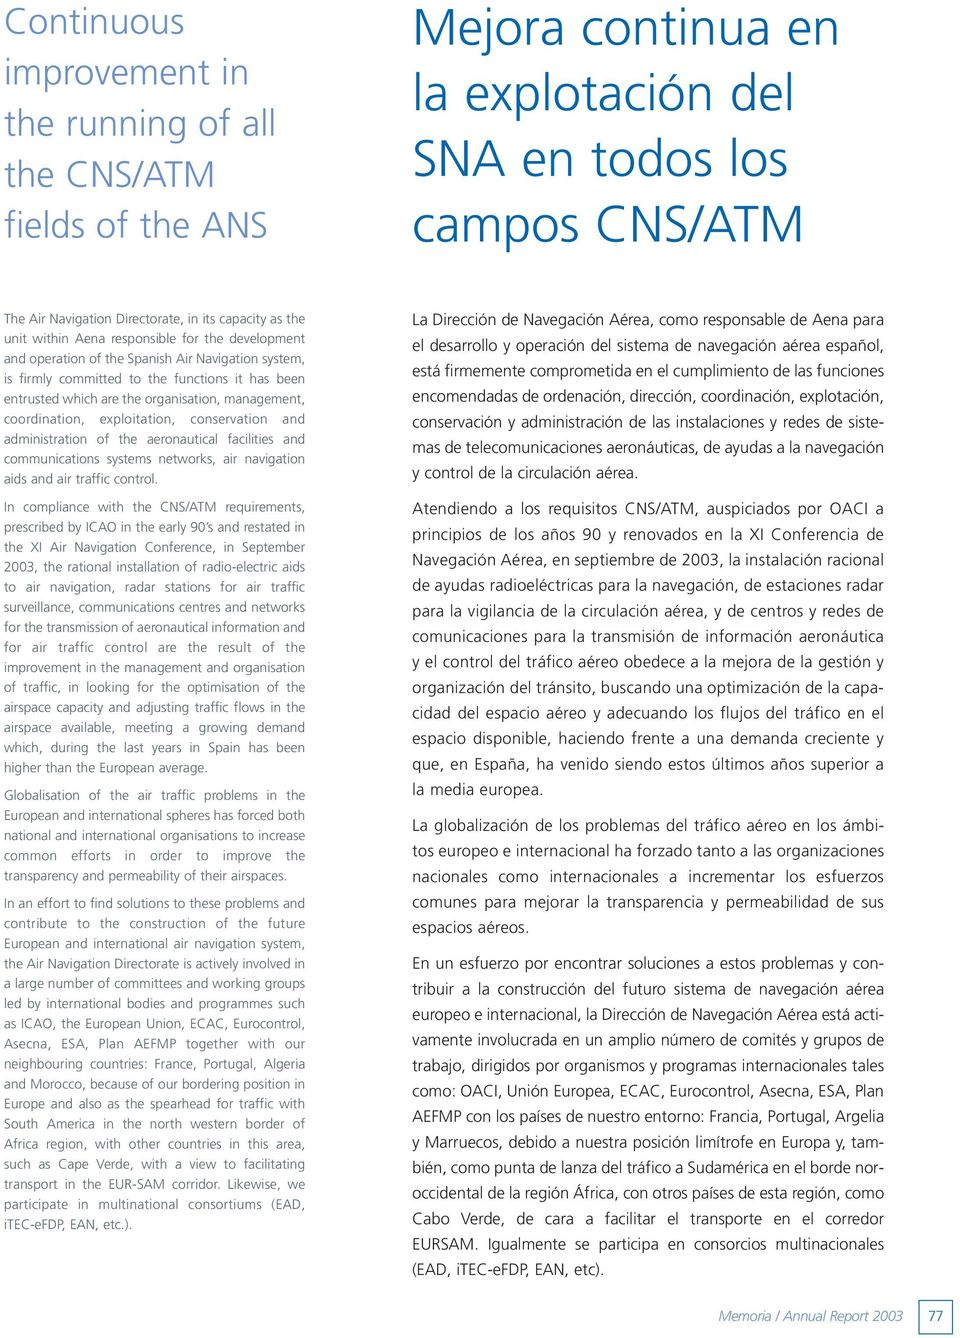 coordination, exploitation, conservation and administration of the aeronautical facilities and communications systems networks, air navigation aids and air traffic control.